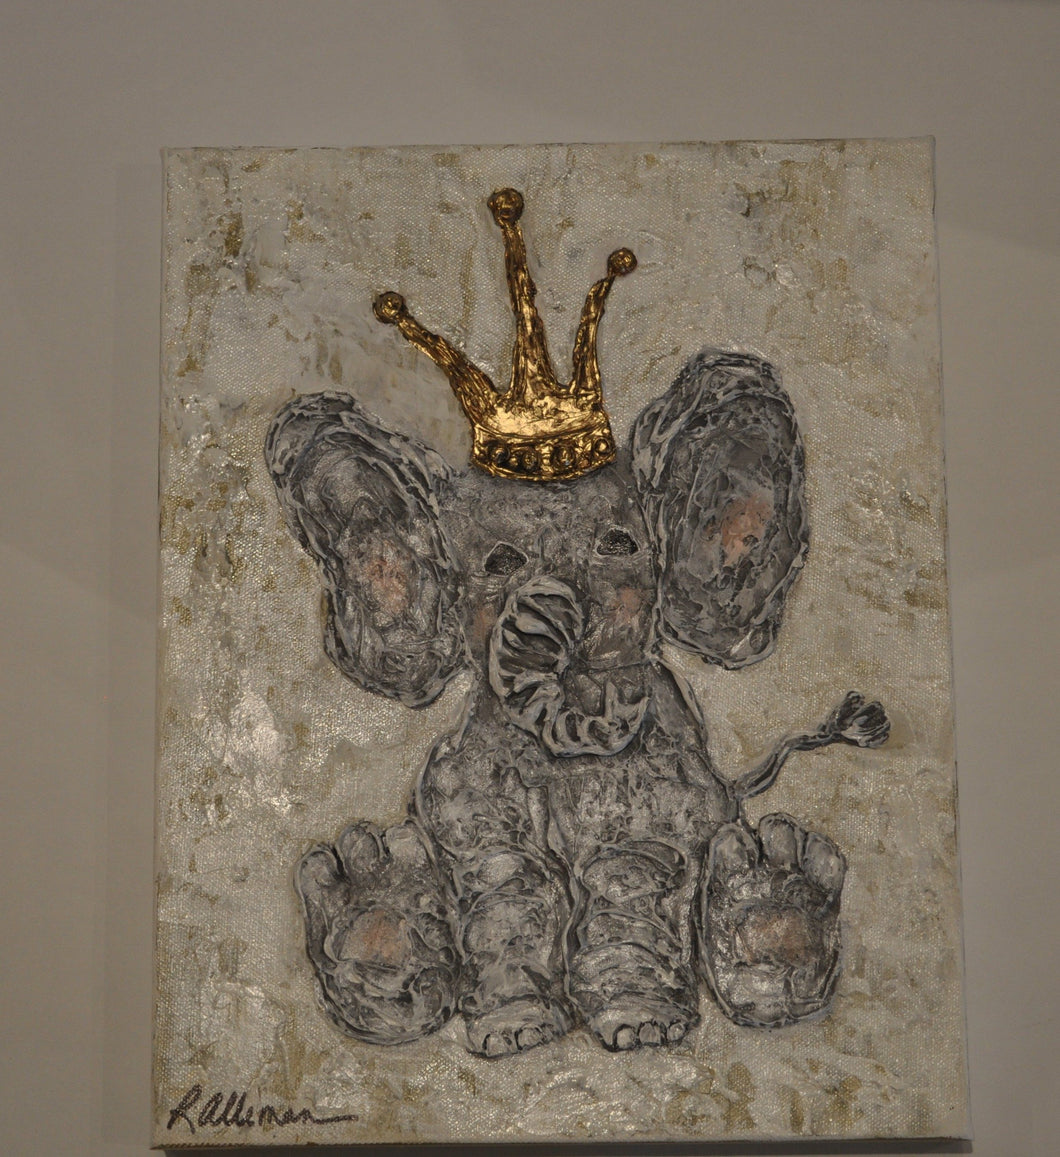 Elephant with crown                                                  #10594